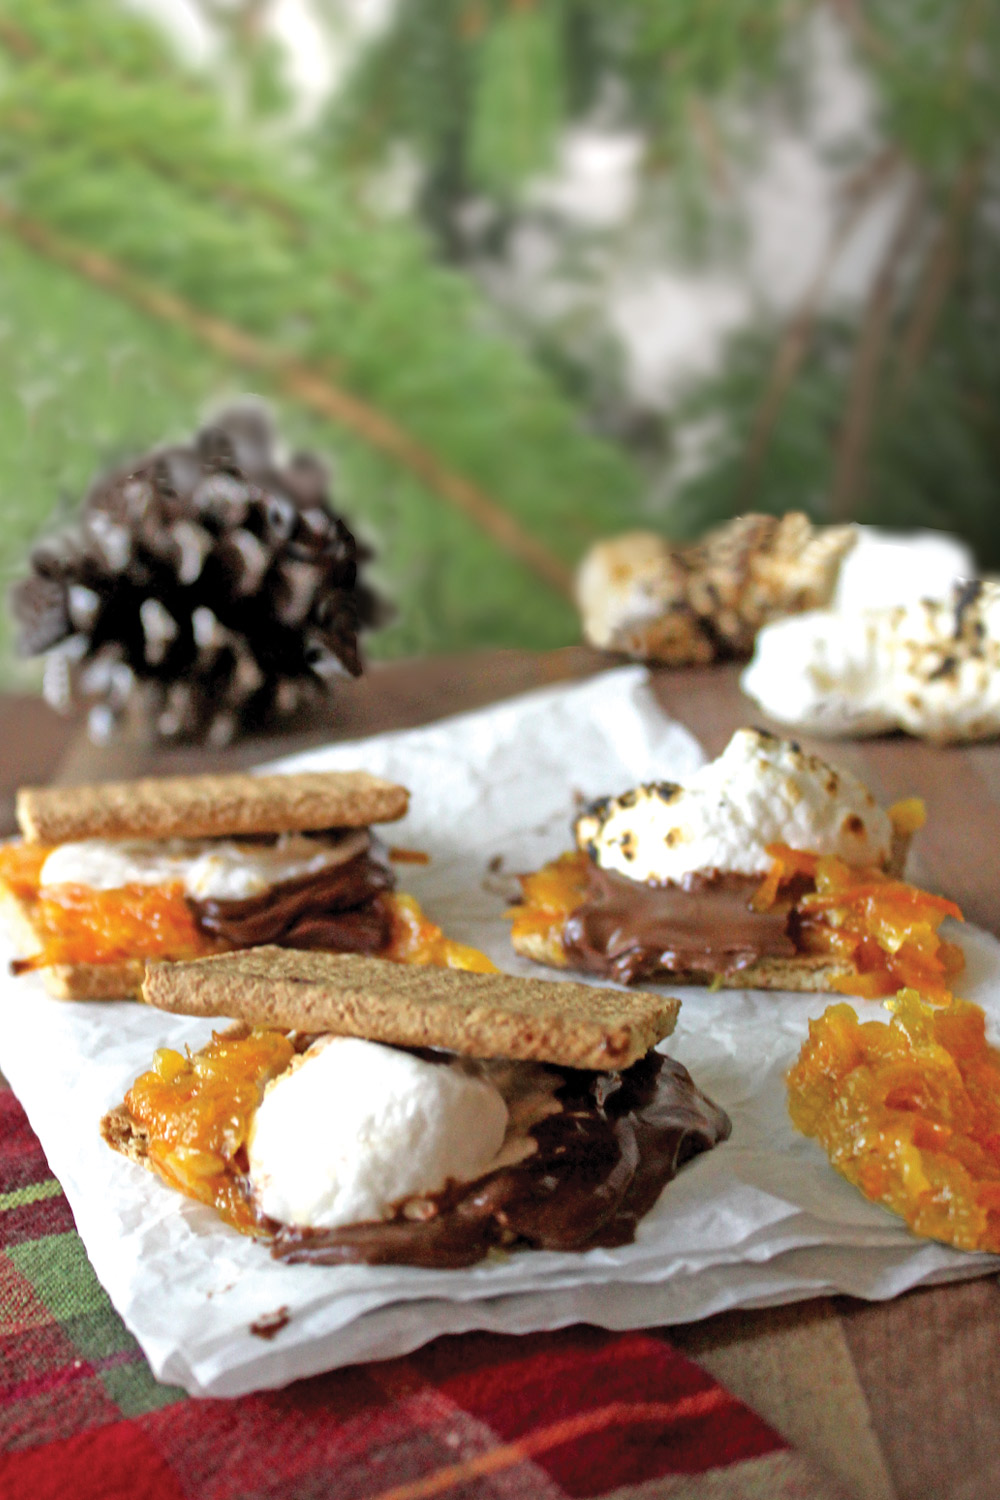 Orange Marmalade S'mores recipe showing stack of s'mores, marshmallows, and marmalade with a pine tree in background